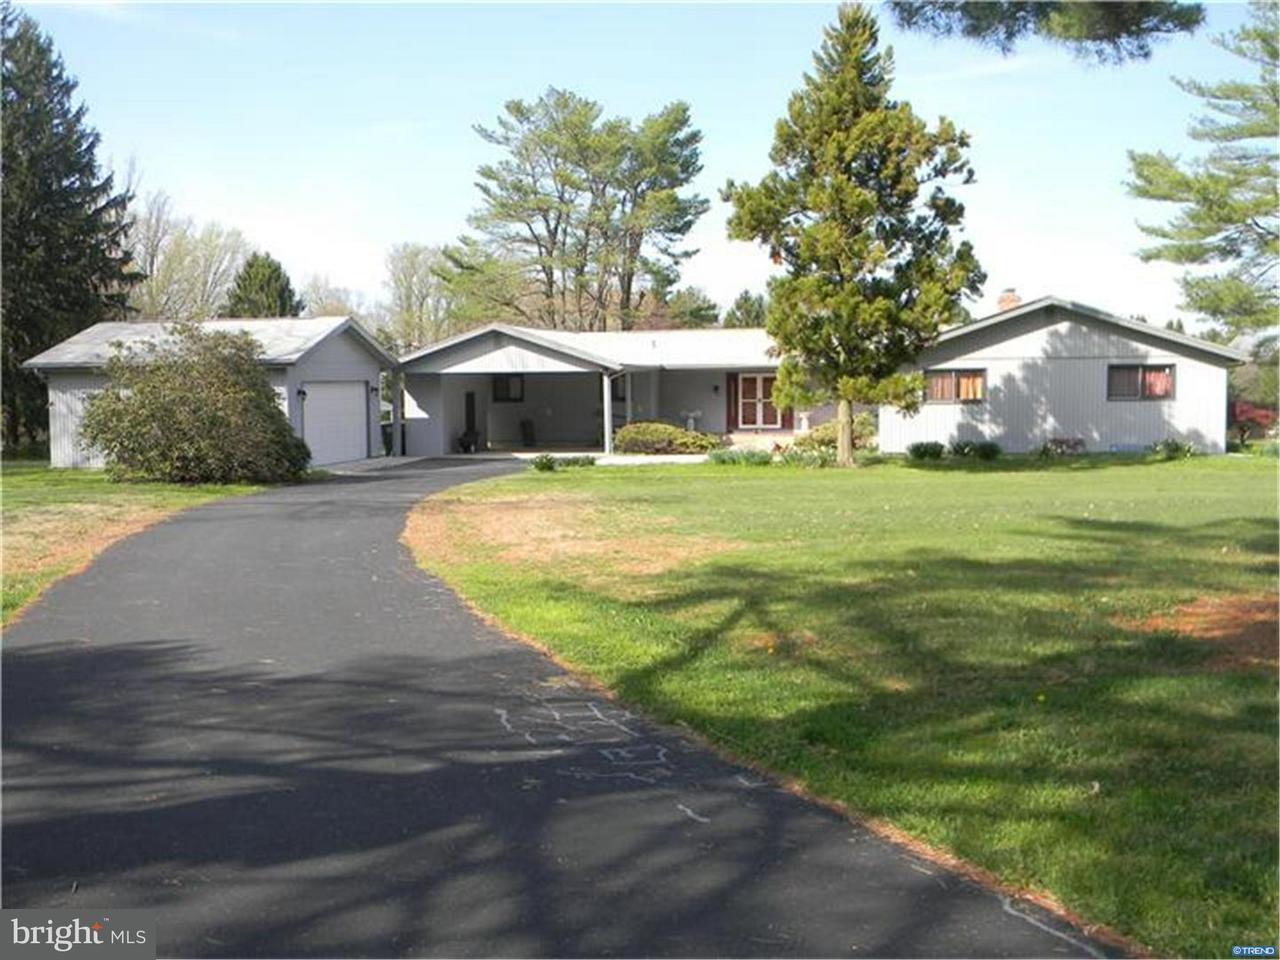 Single Family Home for Sale at 25 N ROSEMONT Circle Elkton, Maryland 21921 United States